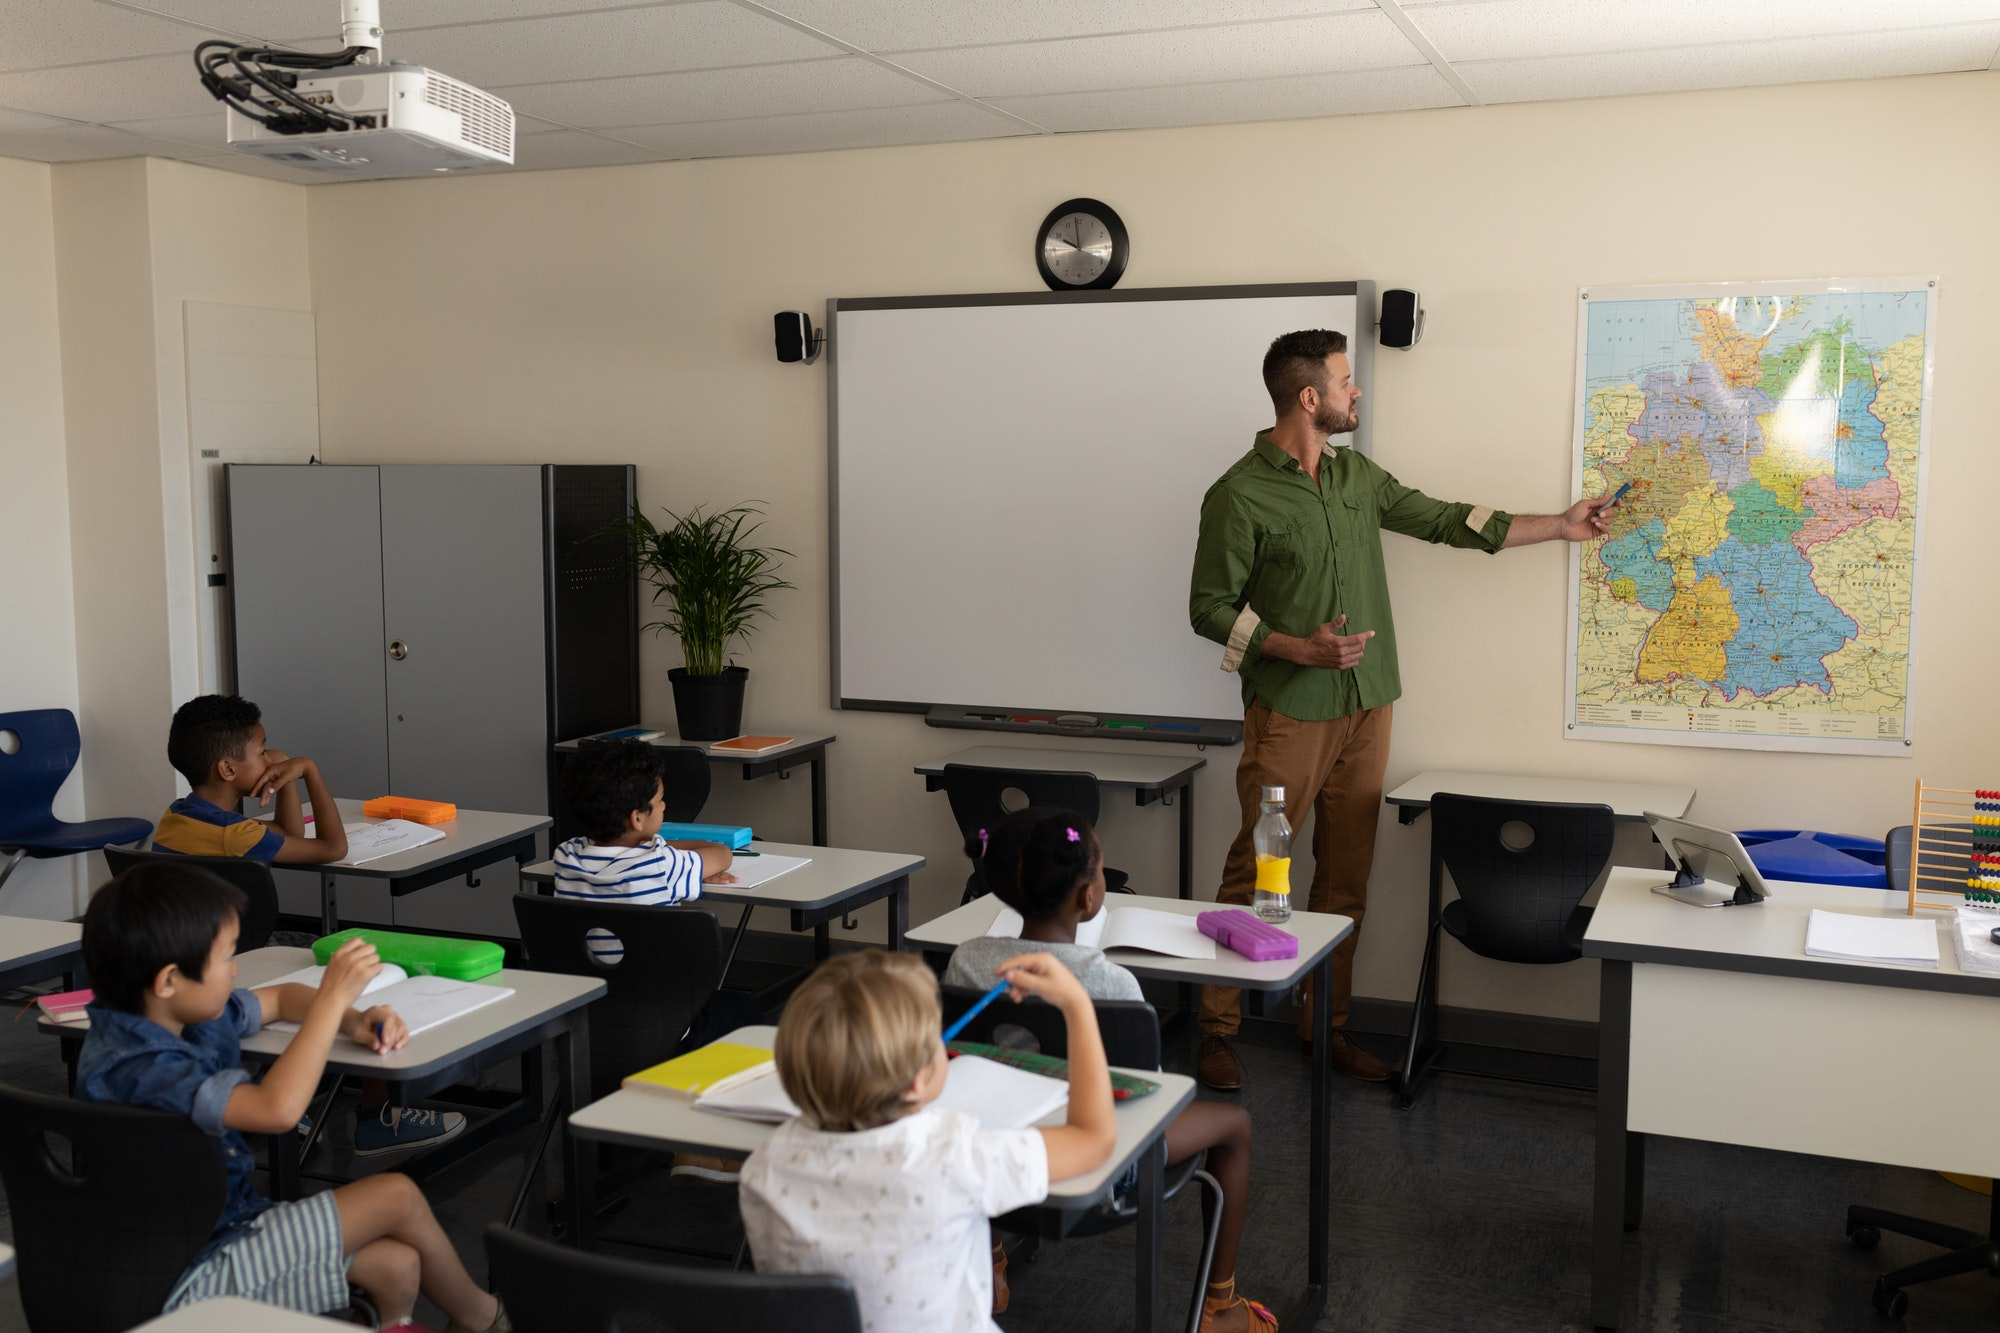 Teacher pointing at a map in classroom of elementary school